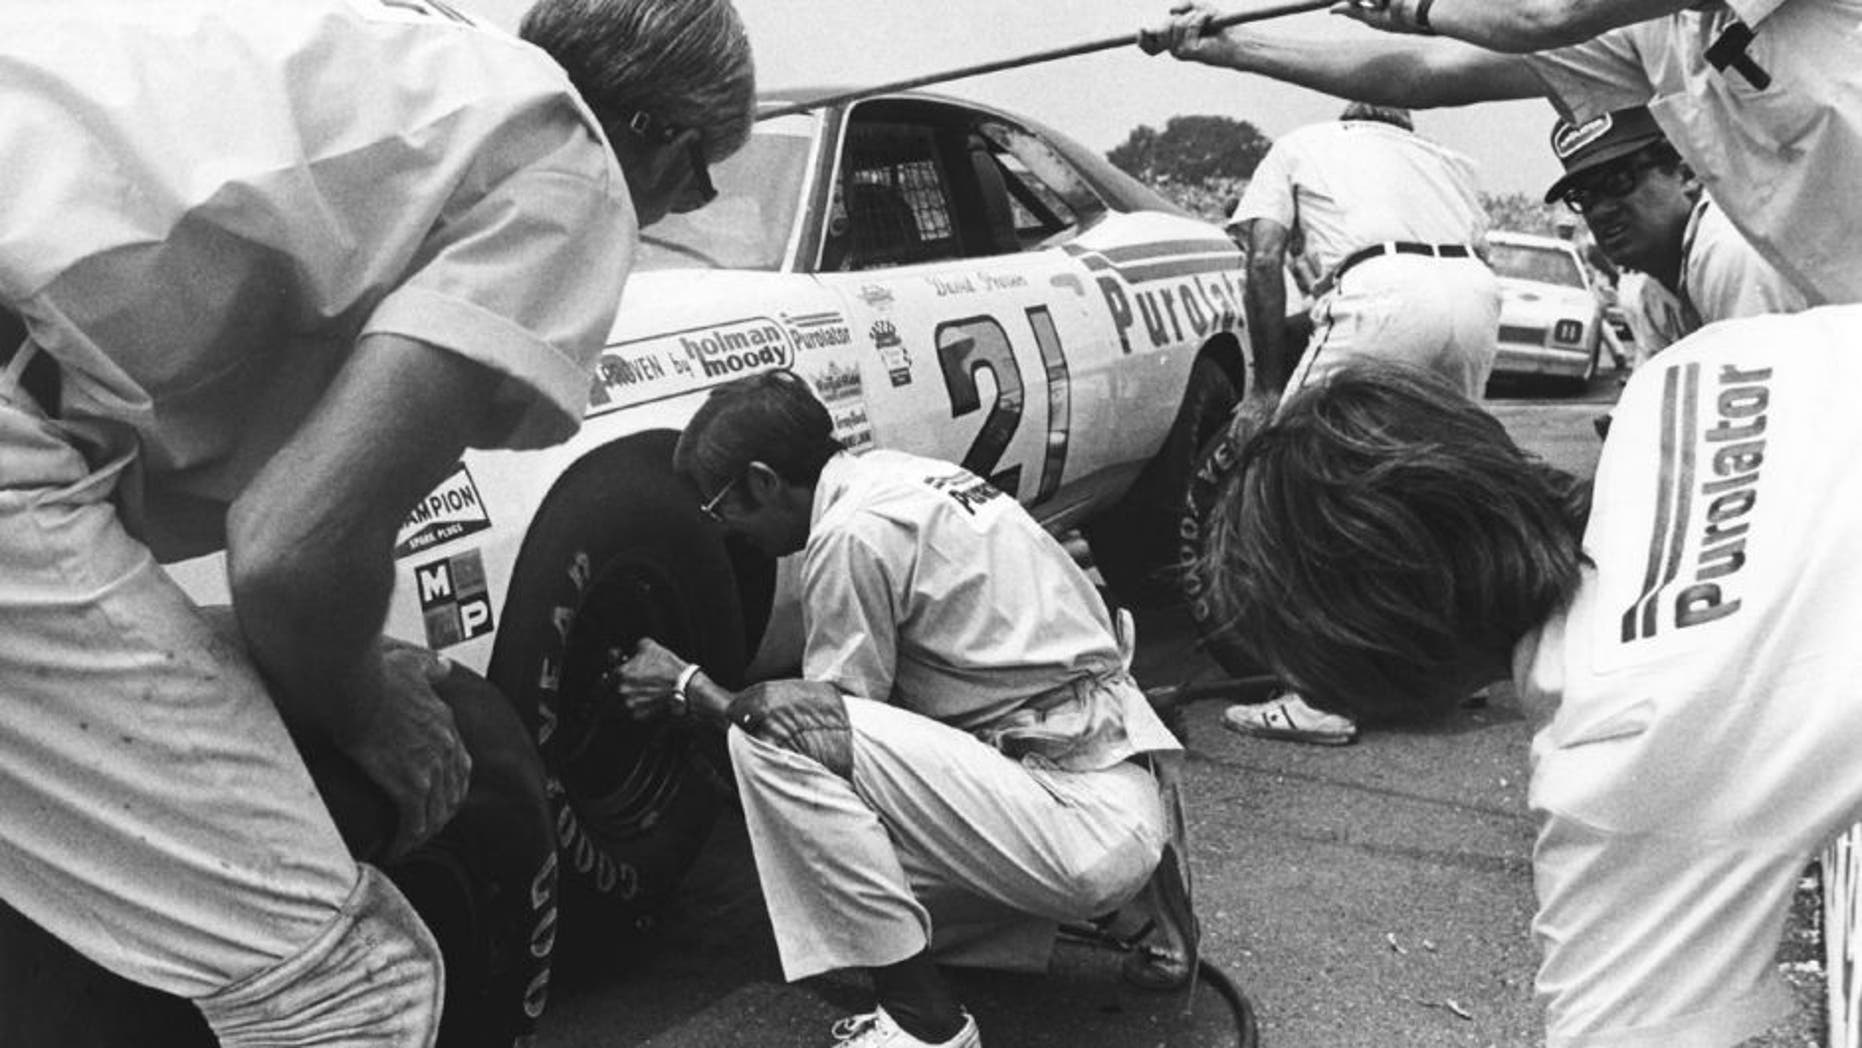 UNKNOWN — 1973: The Wood Brothers pit their car for driver David Pearson during a NASCAR Cup race. The team had an incredible year, winning 11 of the 18 races they entered, and starting from the pole position eight times. (Photo by ISC Images & Archives via Getty Images)